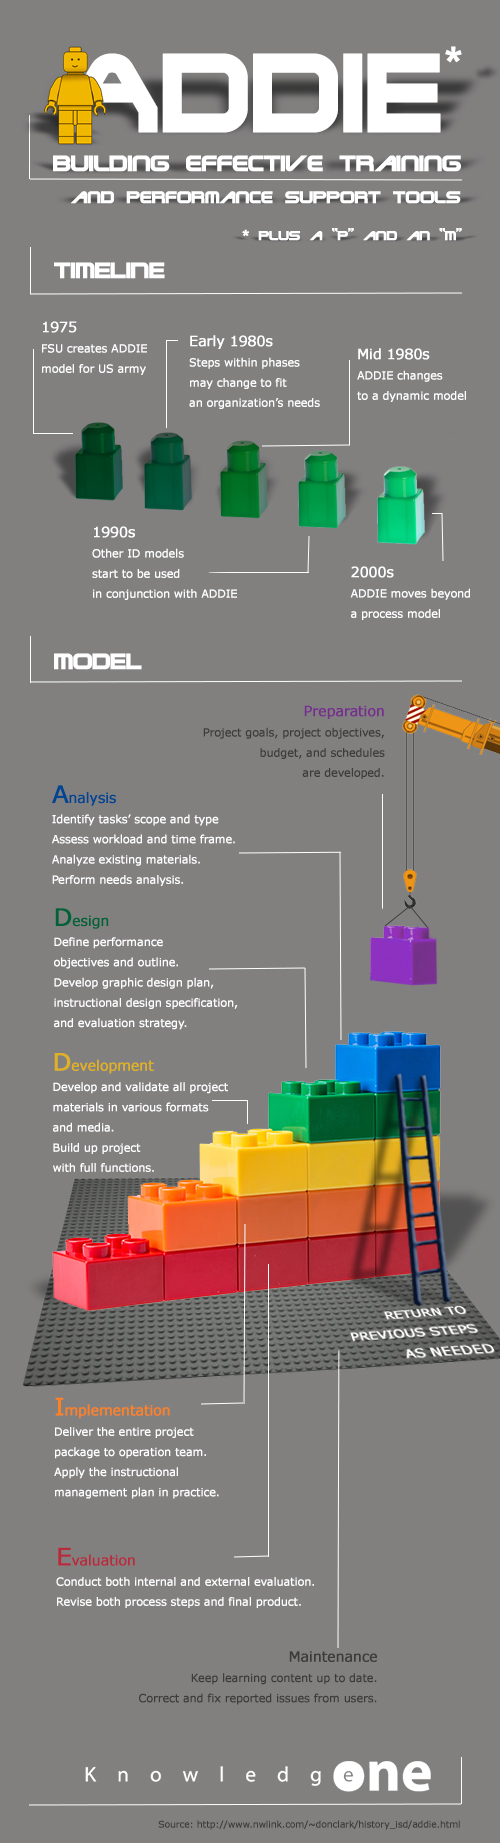 Infographic representing the ADDIE model